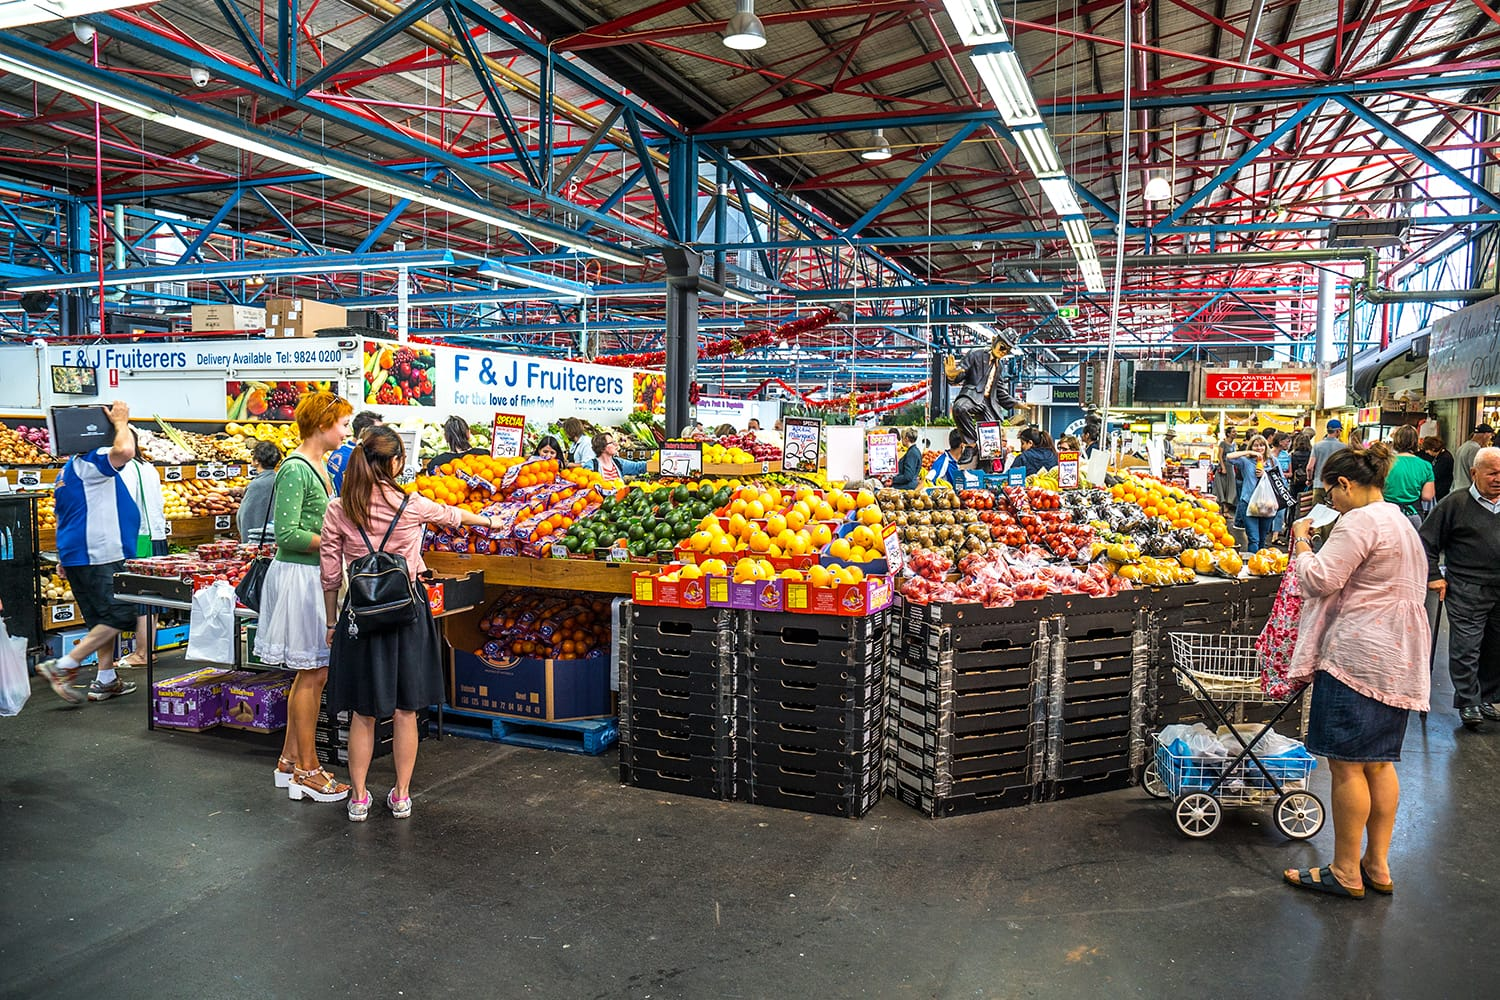 People shopping at the Prahan Market in South Yarra, Melbourne, Australia